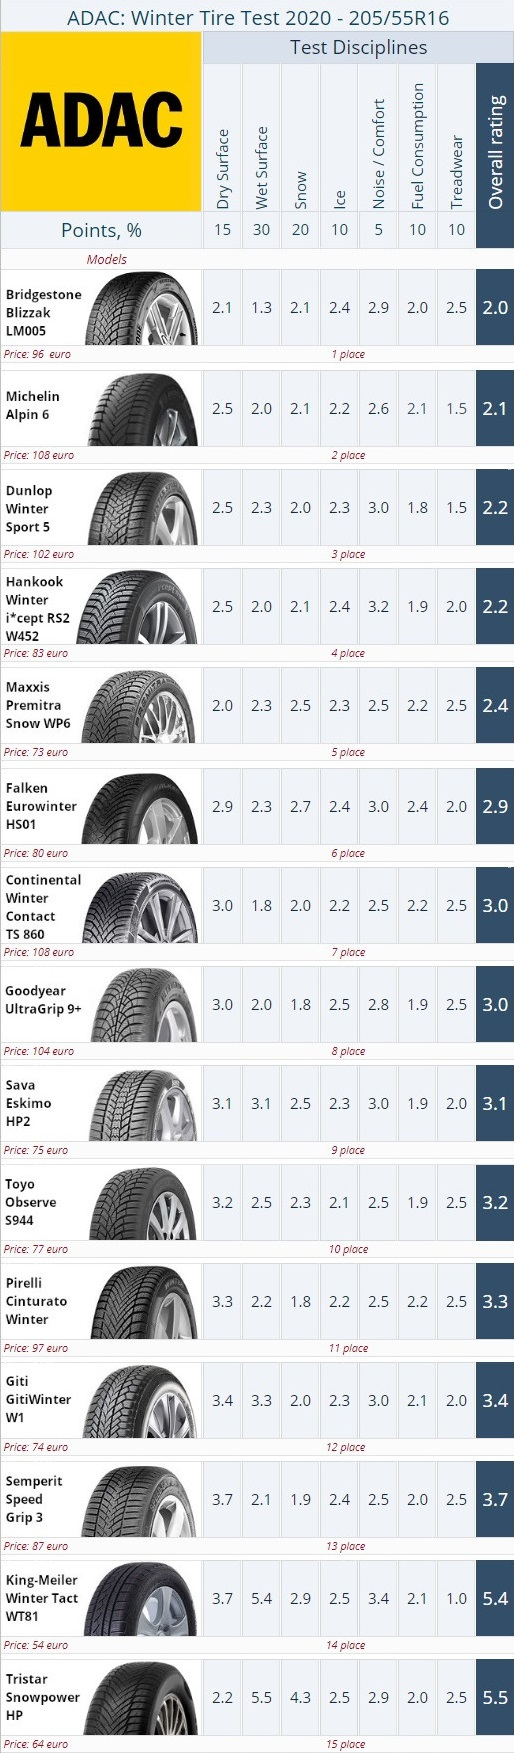 Winter tire ranking 2020 from ADAC. Size 205/55 R16.